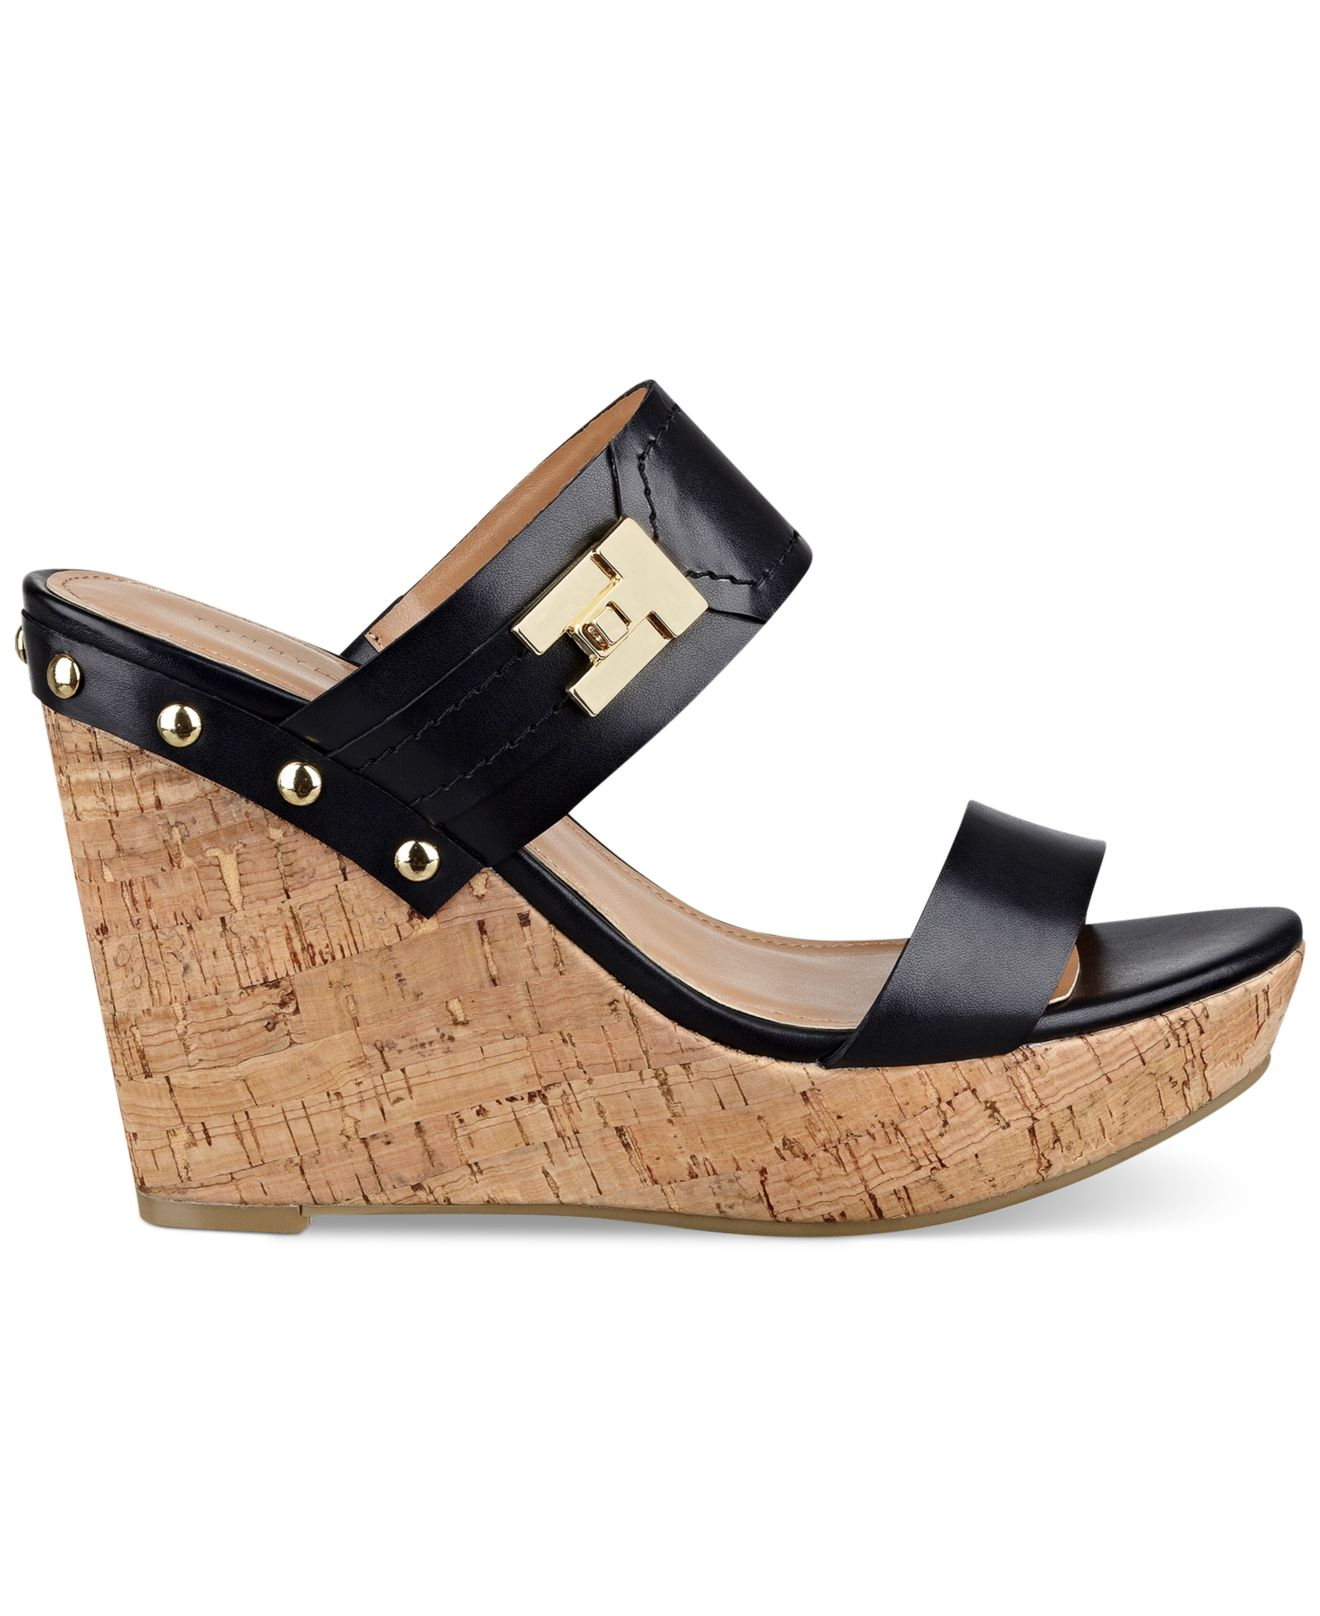 96043068064b4f Lyst - Tommy Hilfiger Women s Madasen Platform Wedge Sandals in Black